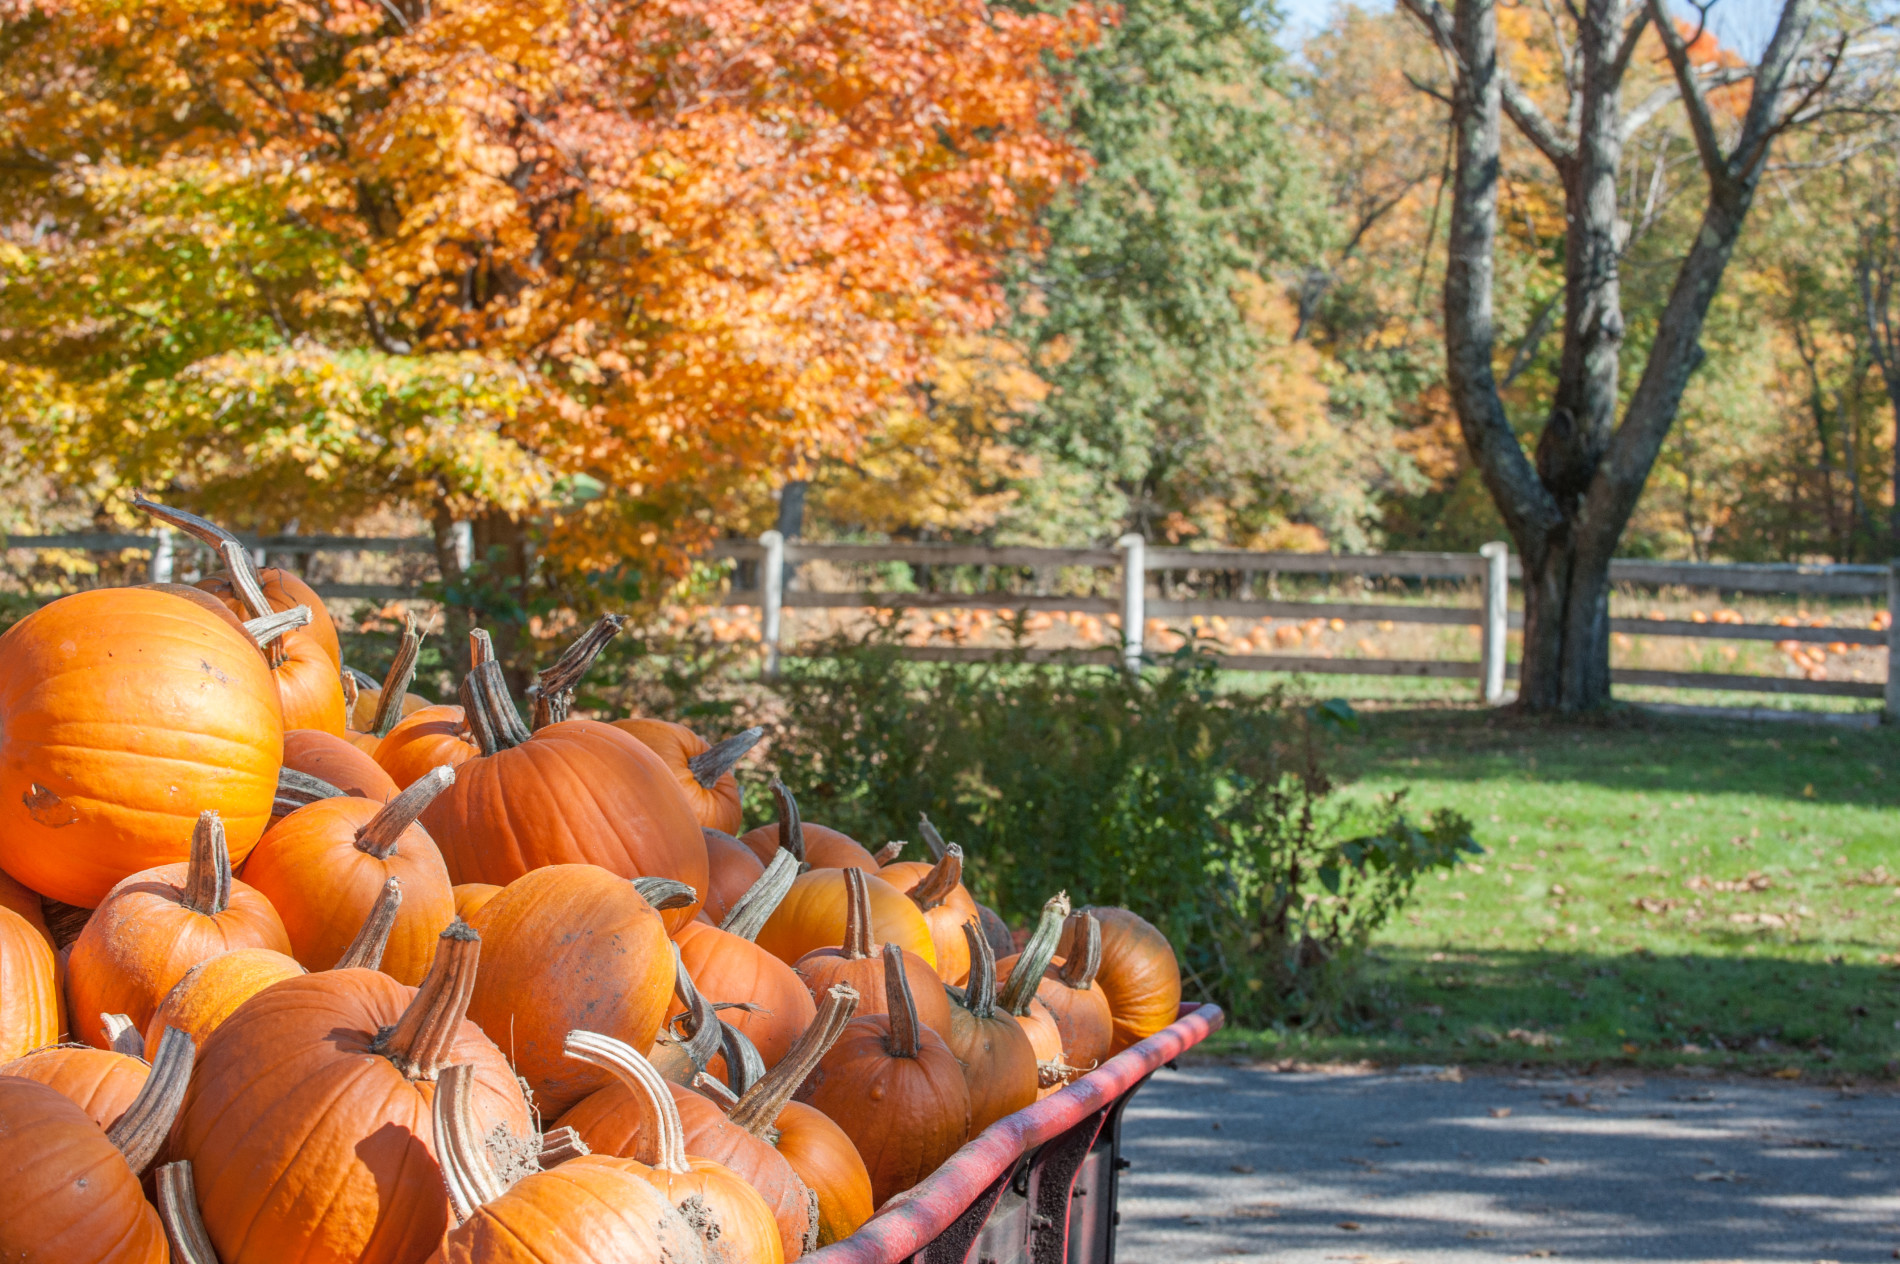 Carol-Savage-Photography---fall-scene-pumpkins-(21)(1)-w1900.jpg